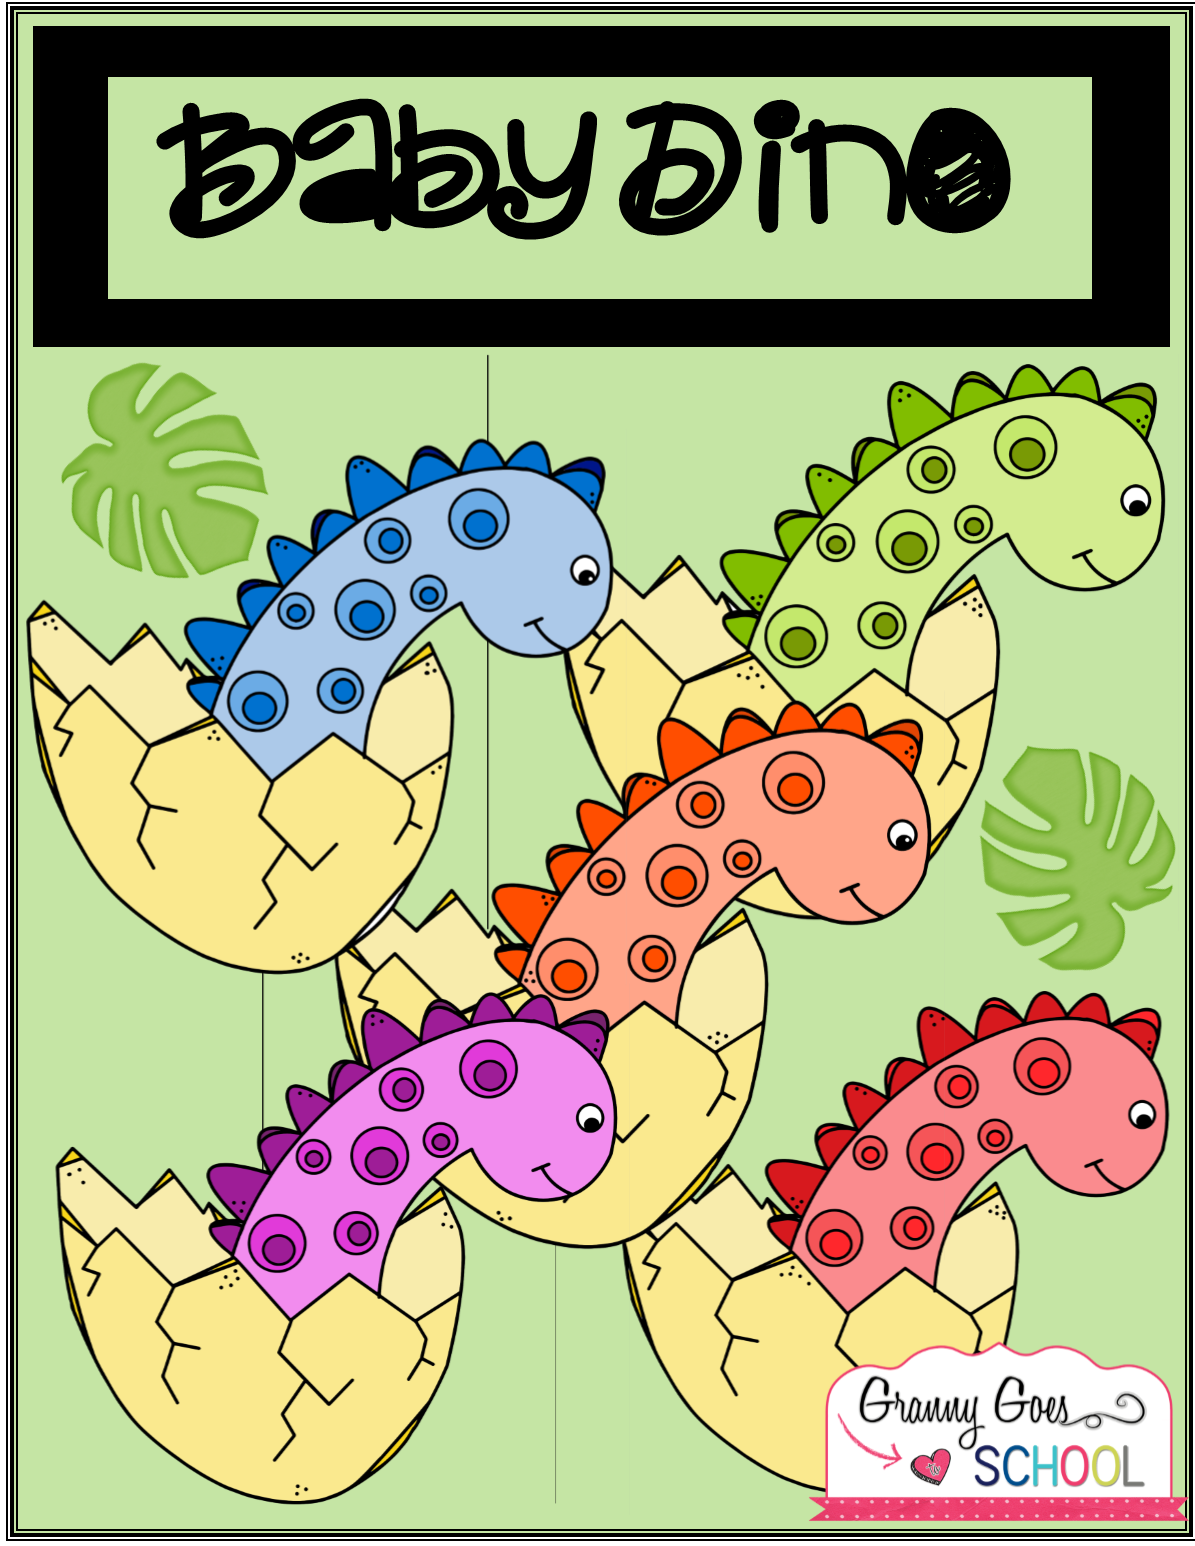 https://www.teacherspayteachers.com/Product/Baby-Dino-Clip-Art-Freebie-1811511